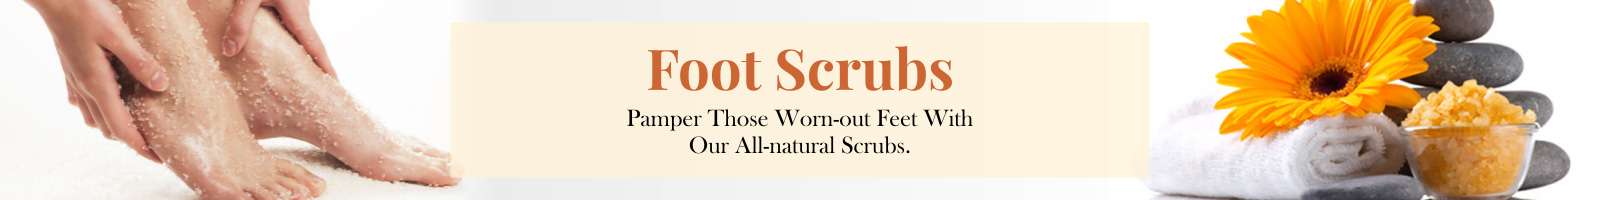 Foot Scrubs & Scrubbers